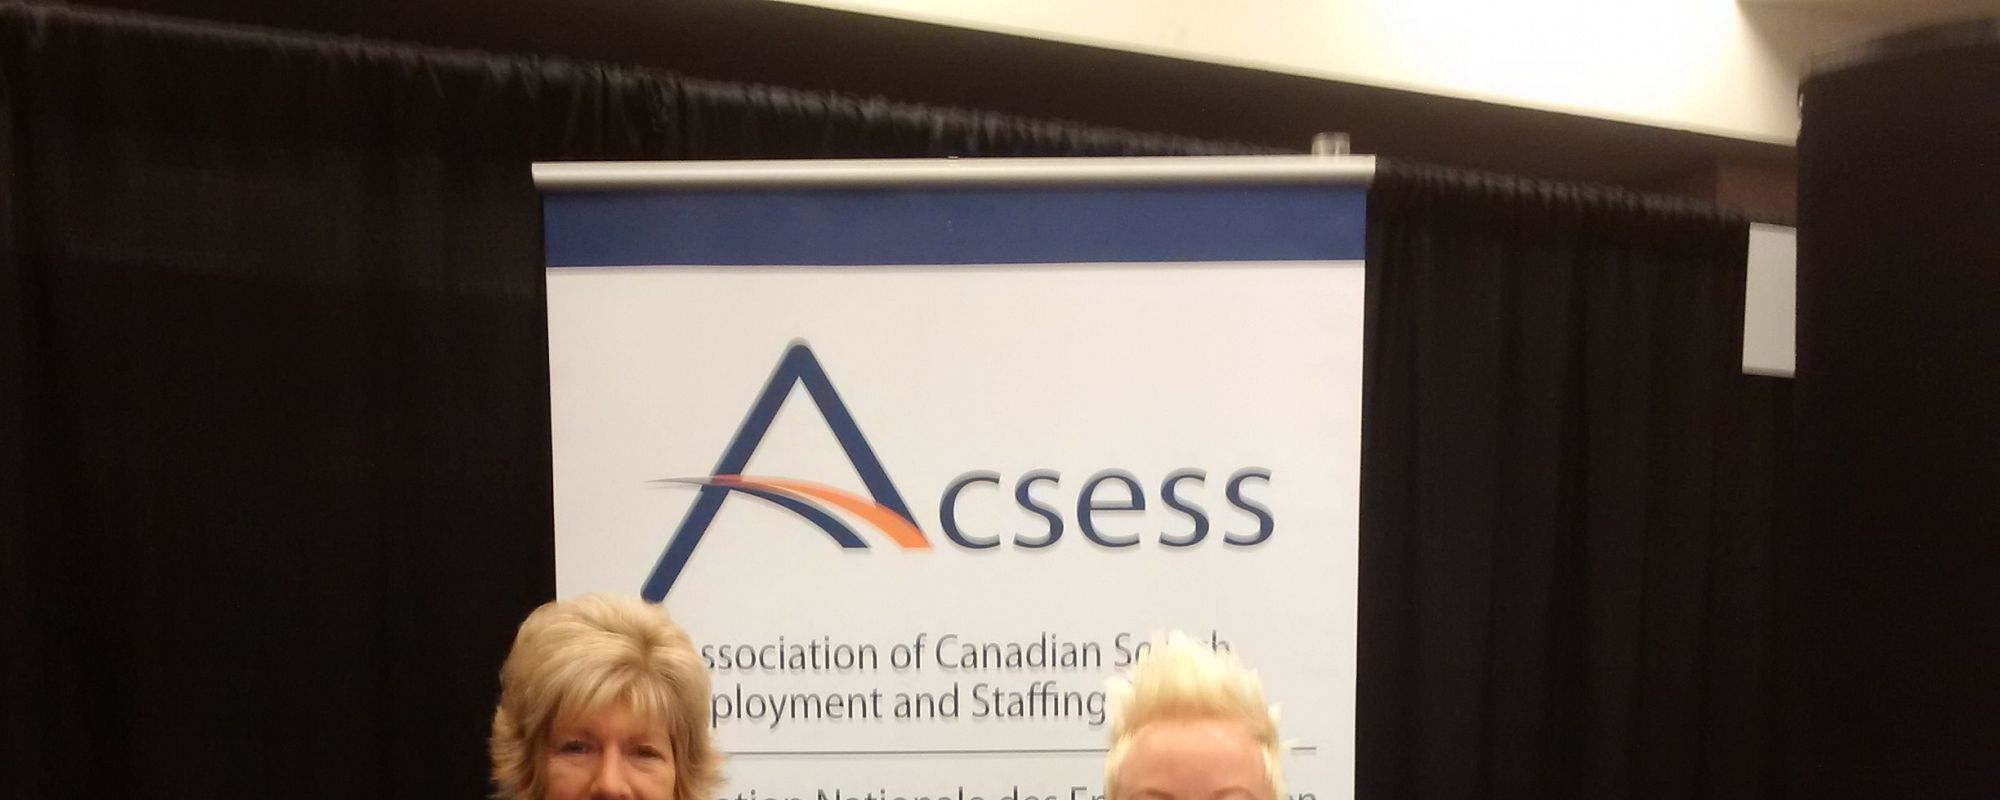 Acsess 2019 Annual Conference - Montreal QC